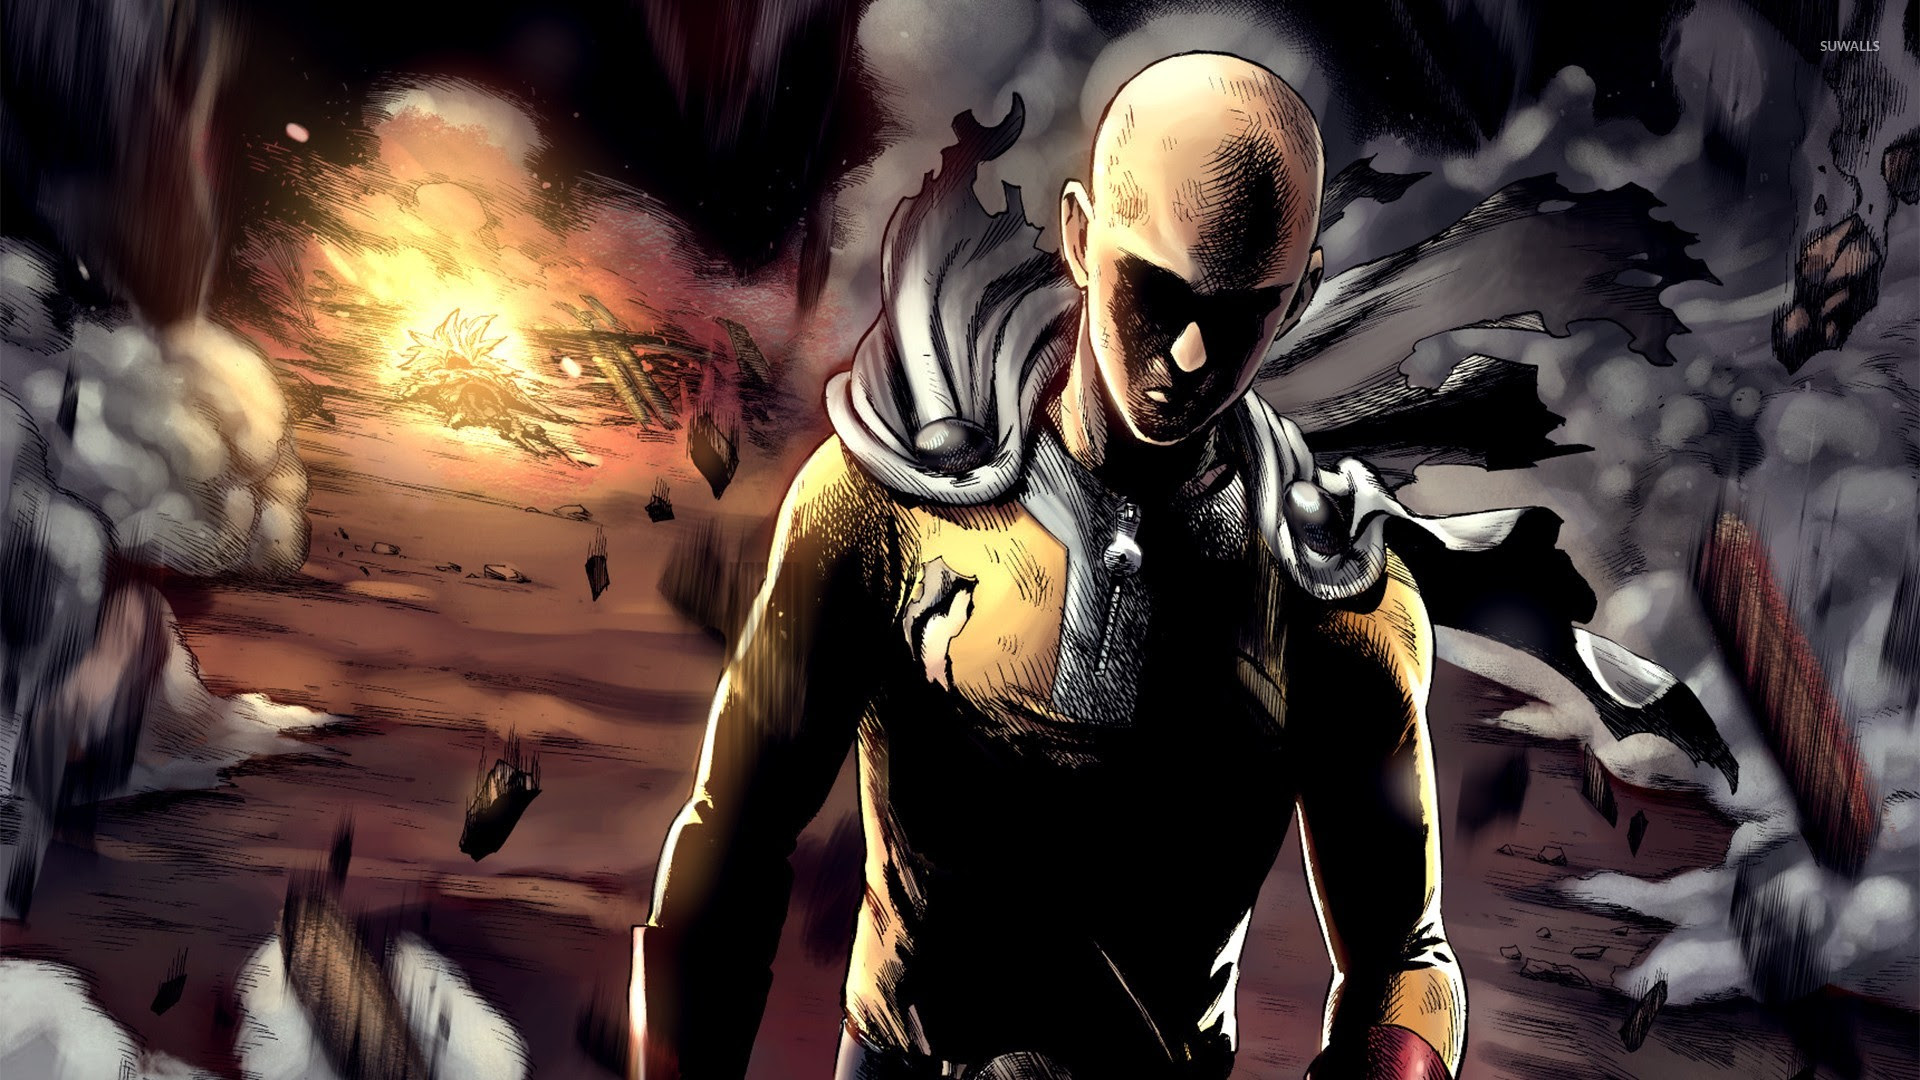 Saitama One Punch Man Wallpapers Hd Wallpapers Id 16960 2 Wallpaper